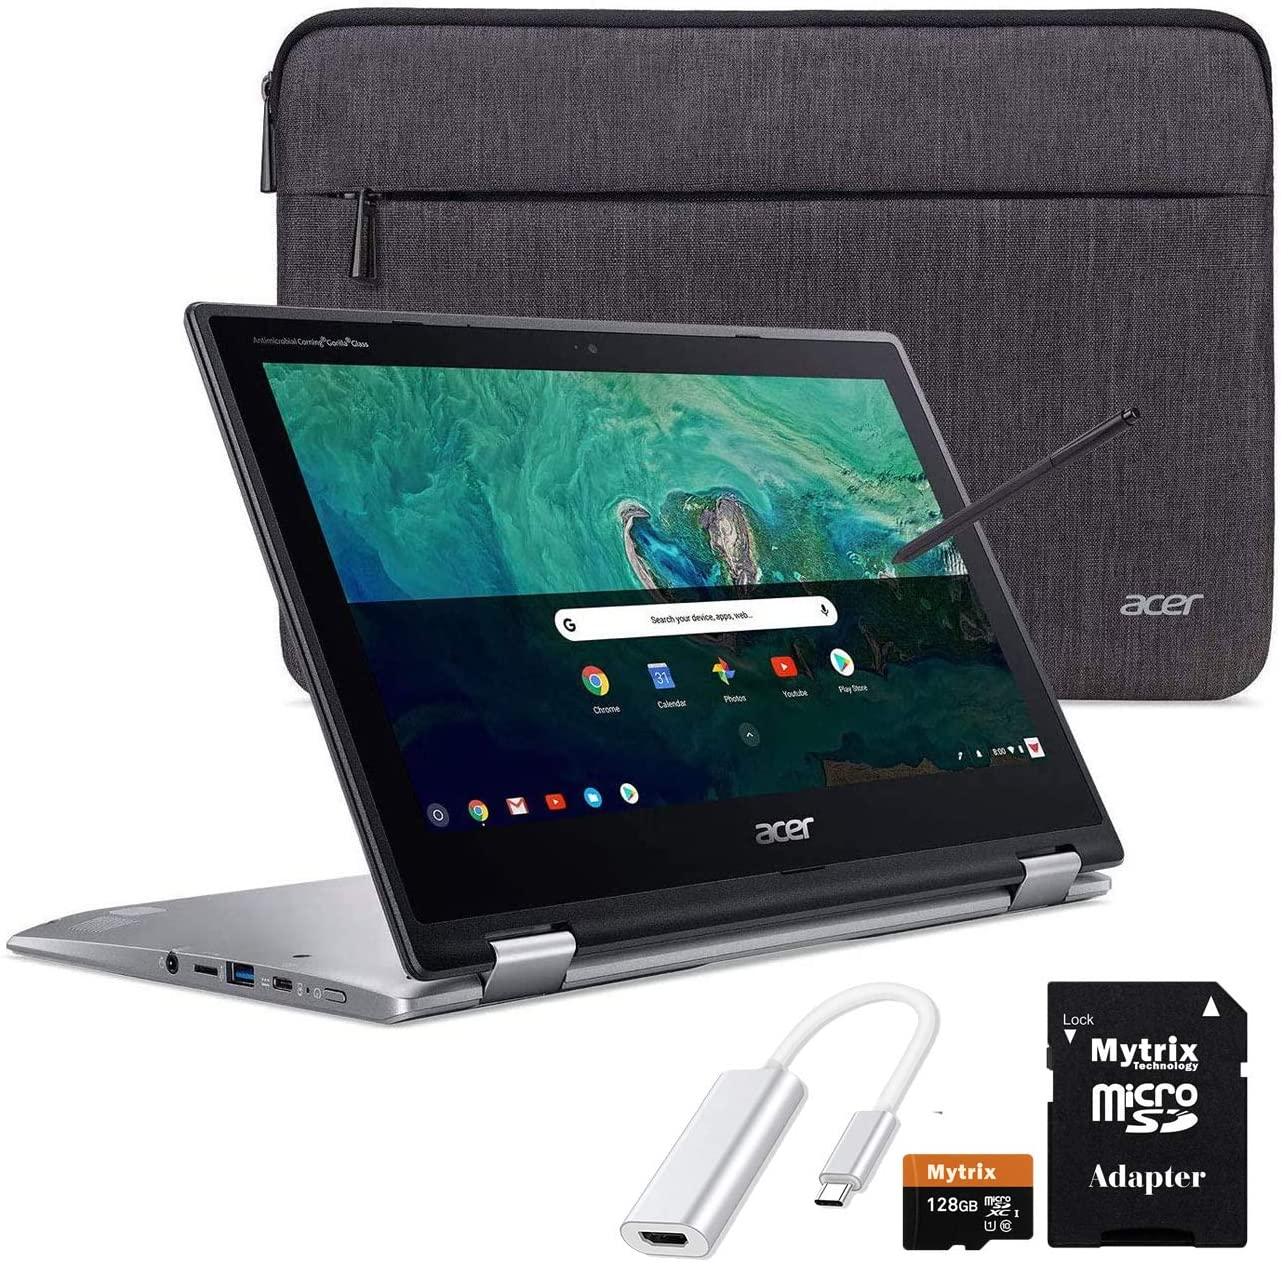 Acer Chromebook Spin 11 2-in-1 Convertible Touchscreen Laptop 11.6